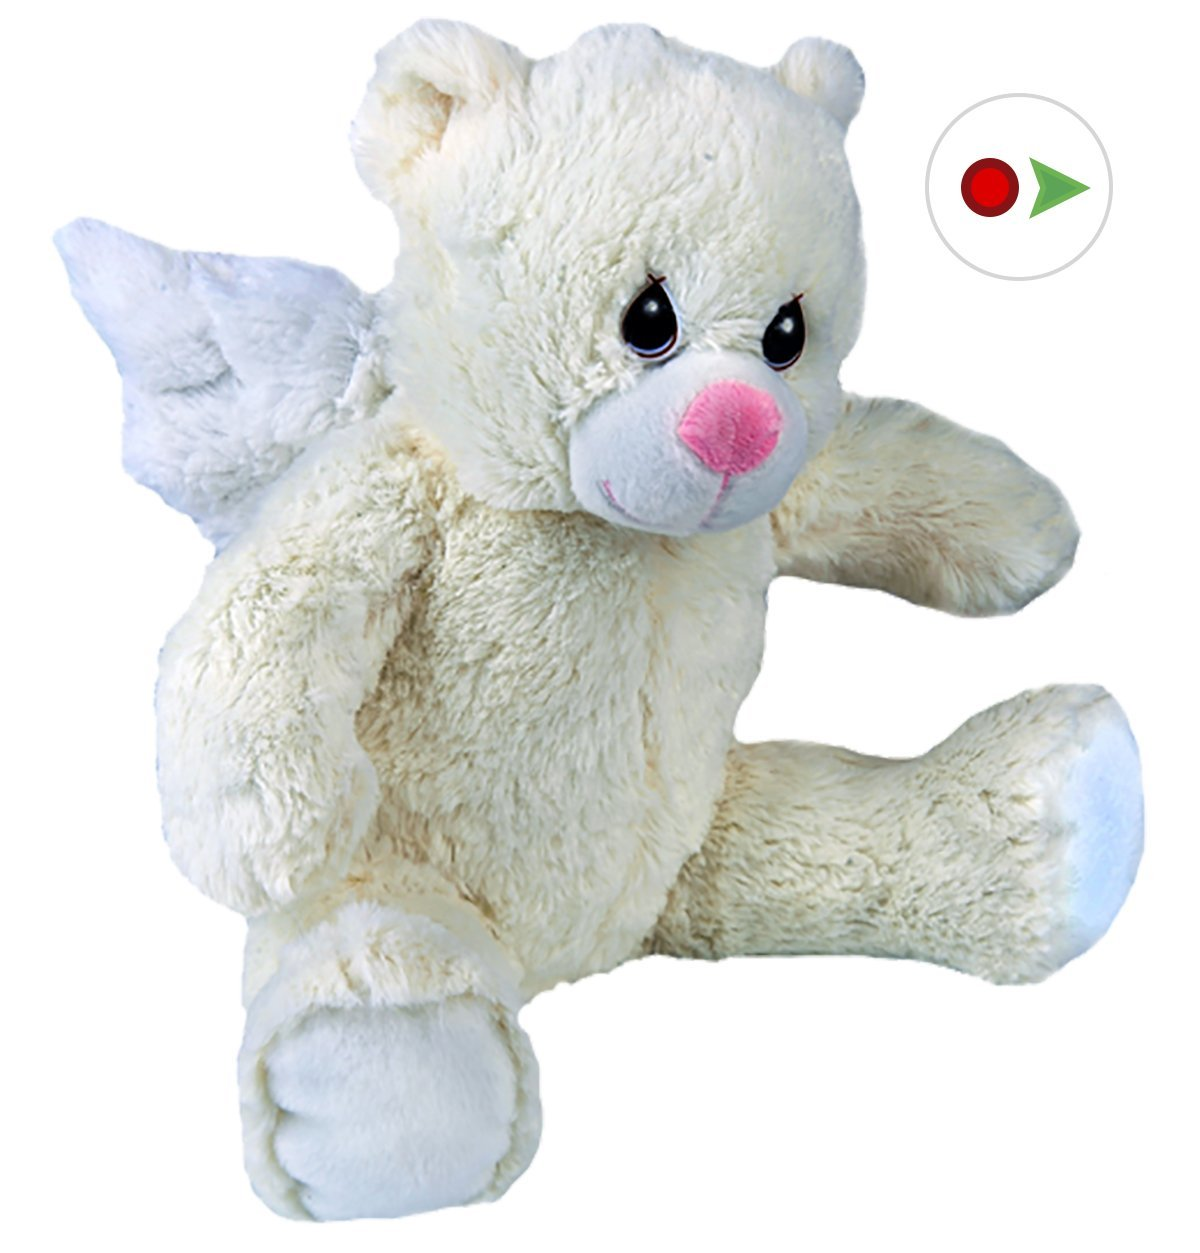 Record Your Own Plush 16� inch Angel Teddy Bear Ready 2 Love in a Few Easy Steps by Teddy Mountain